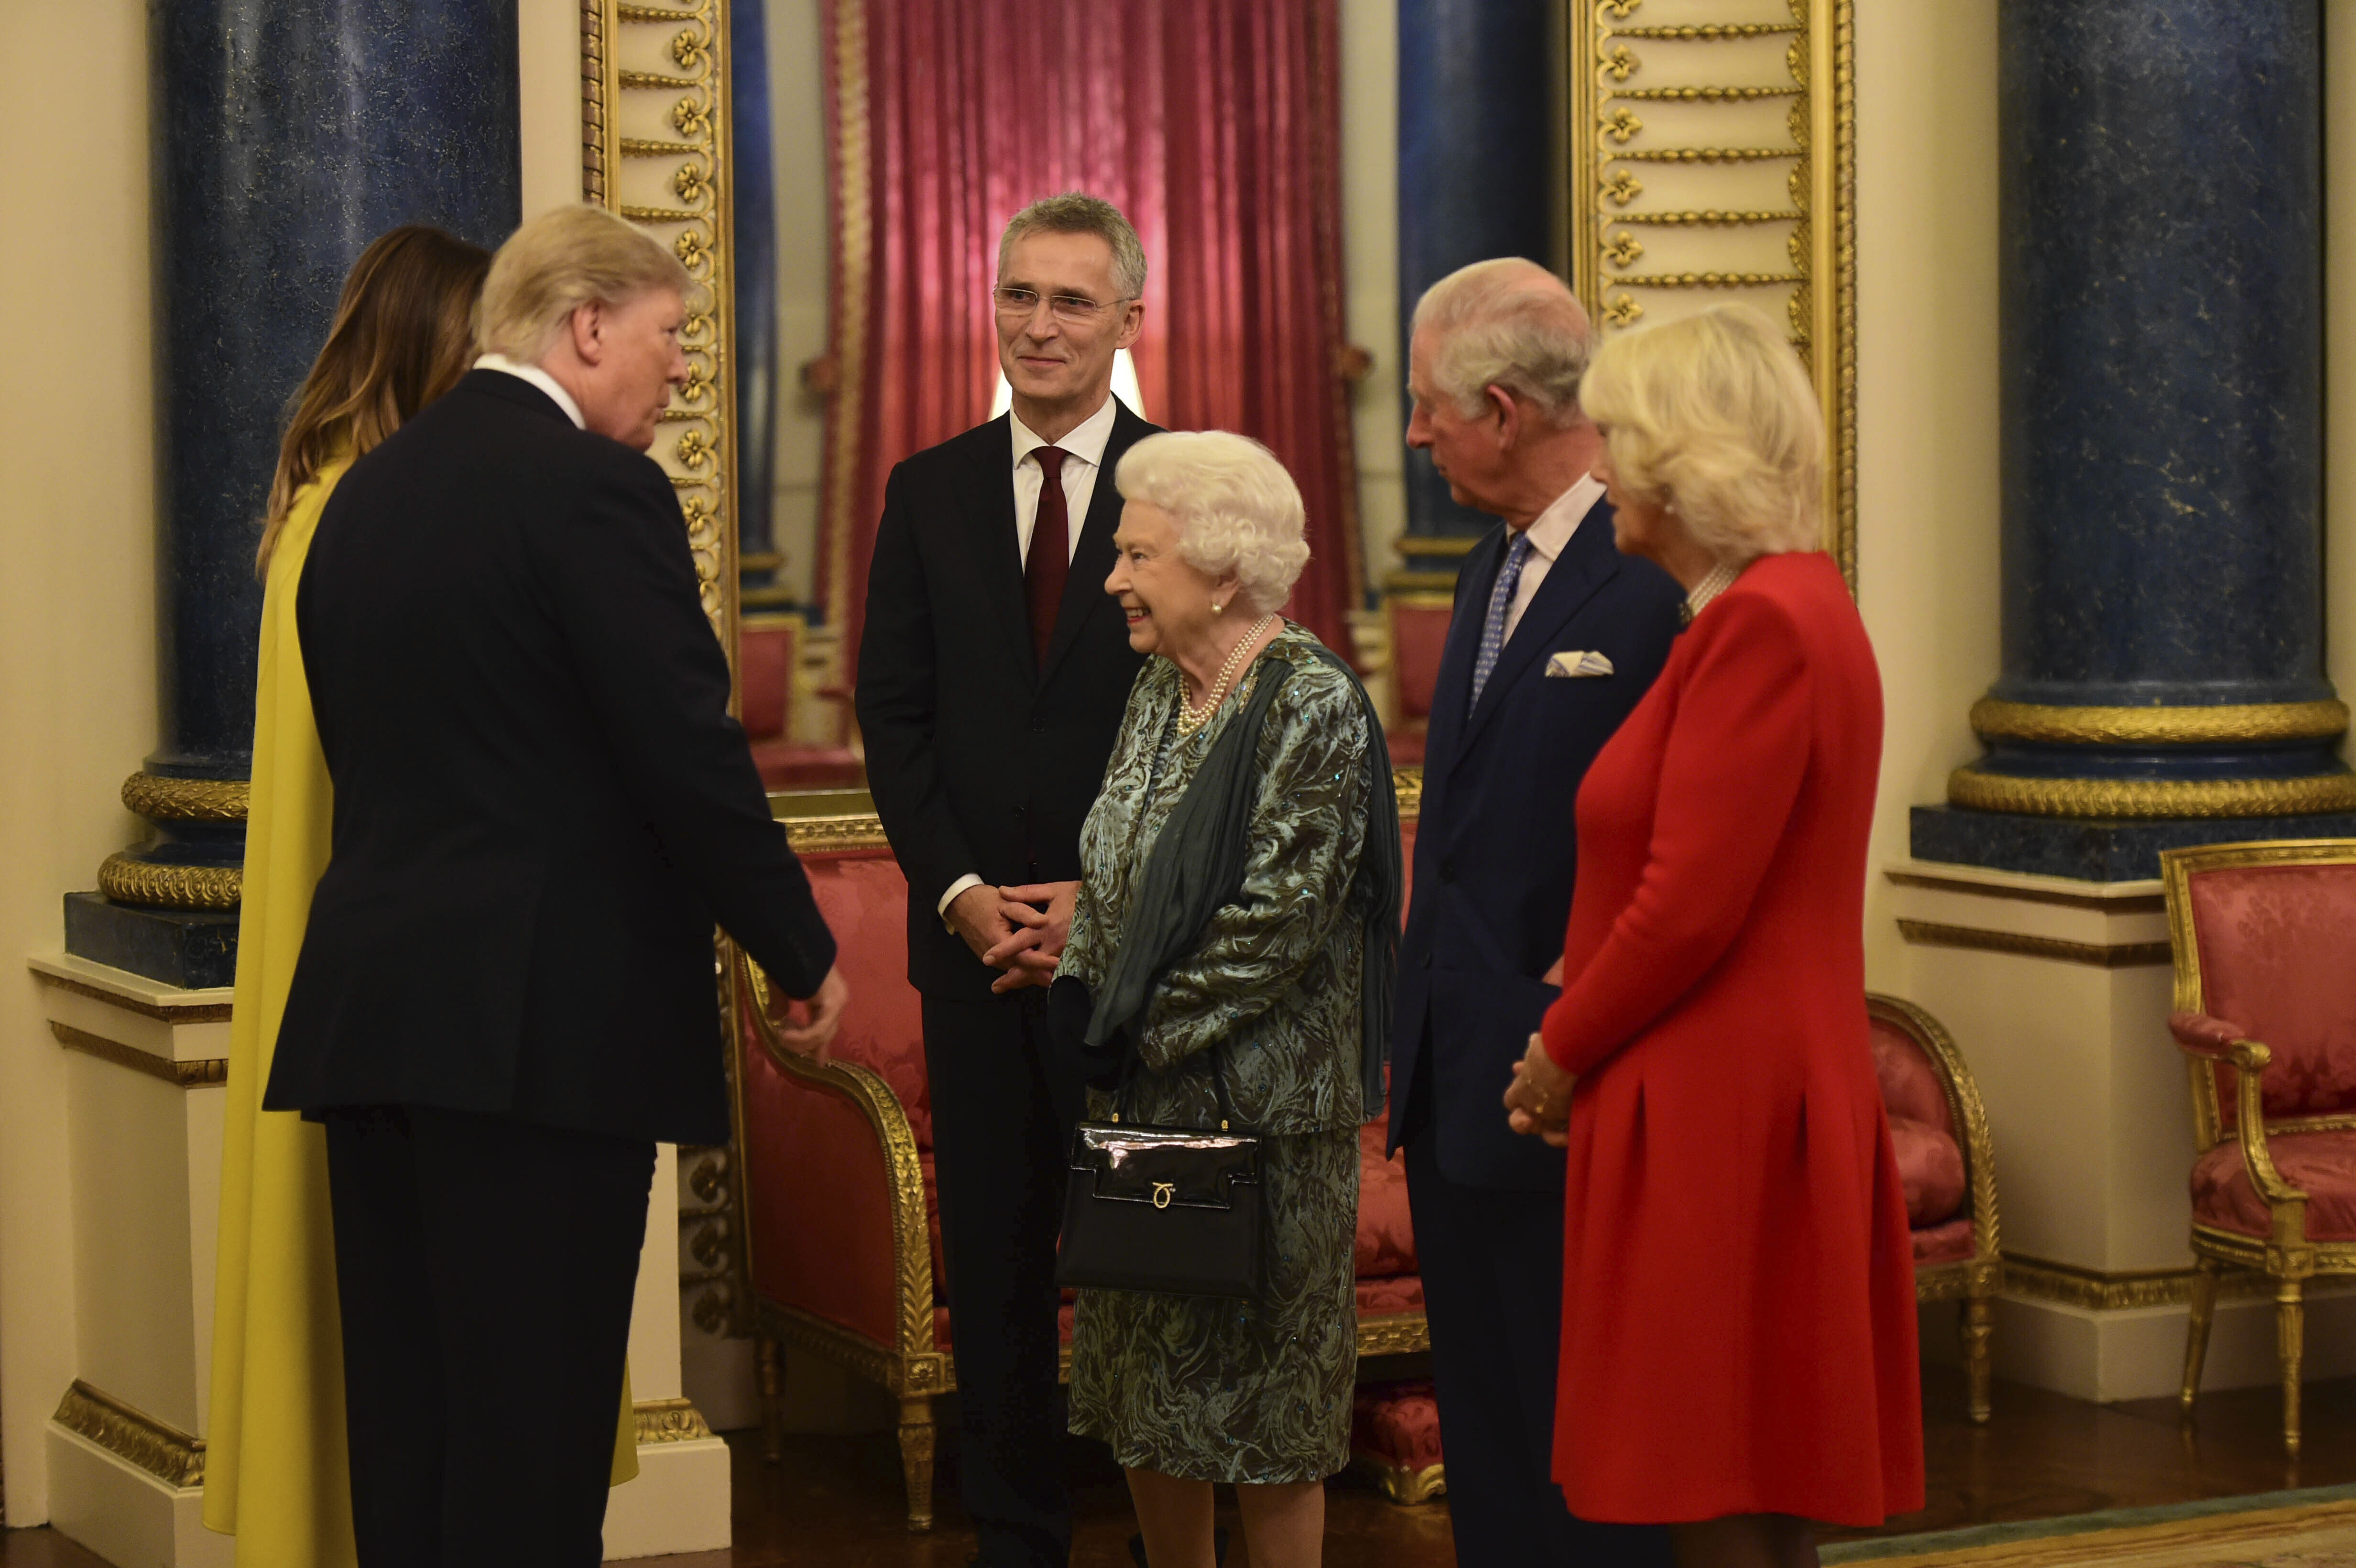 Photo by: KGC-512/STAR MAX/IPx 2019 12/3/19 The Queen, accompanied by other Members of the Royal Family, hosts a reception for NATO leaders, spouses or partners, and delegations, at Buckingham Palace, London, UK, on the 3rd December 2019.